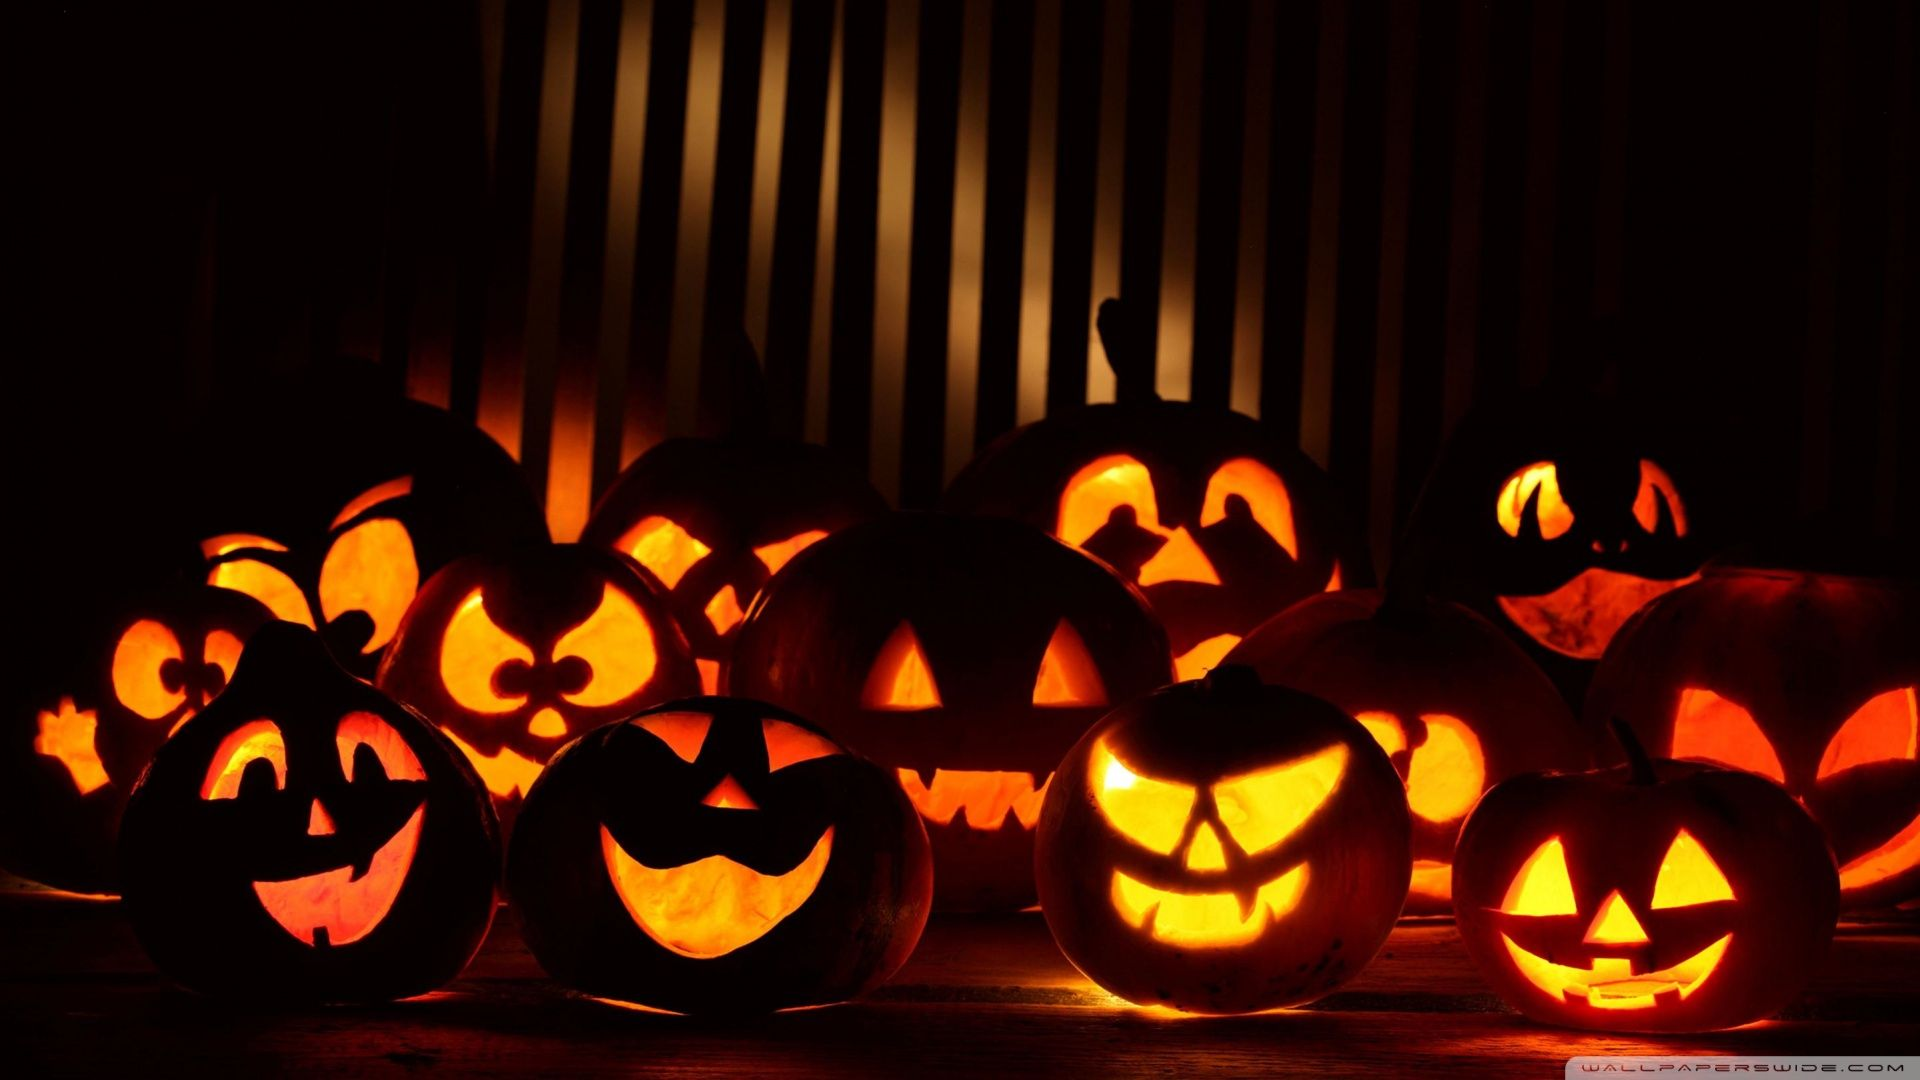 halloween hd wallpapers hd halloween hd images halloween hd